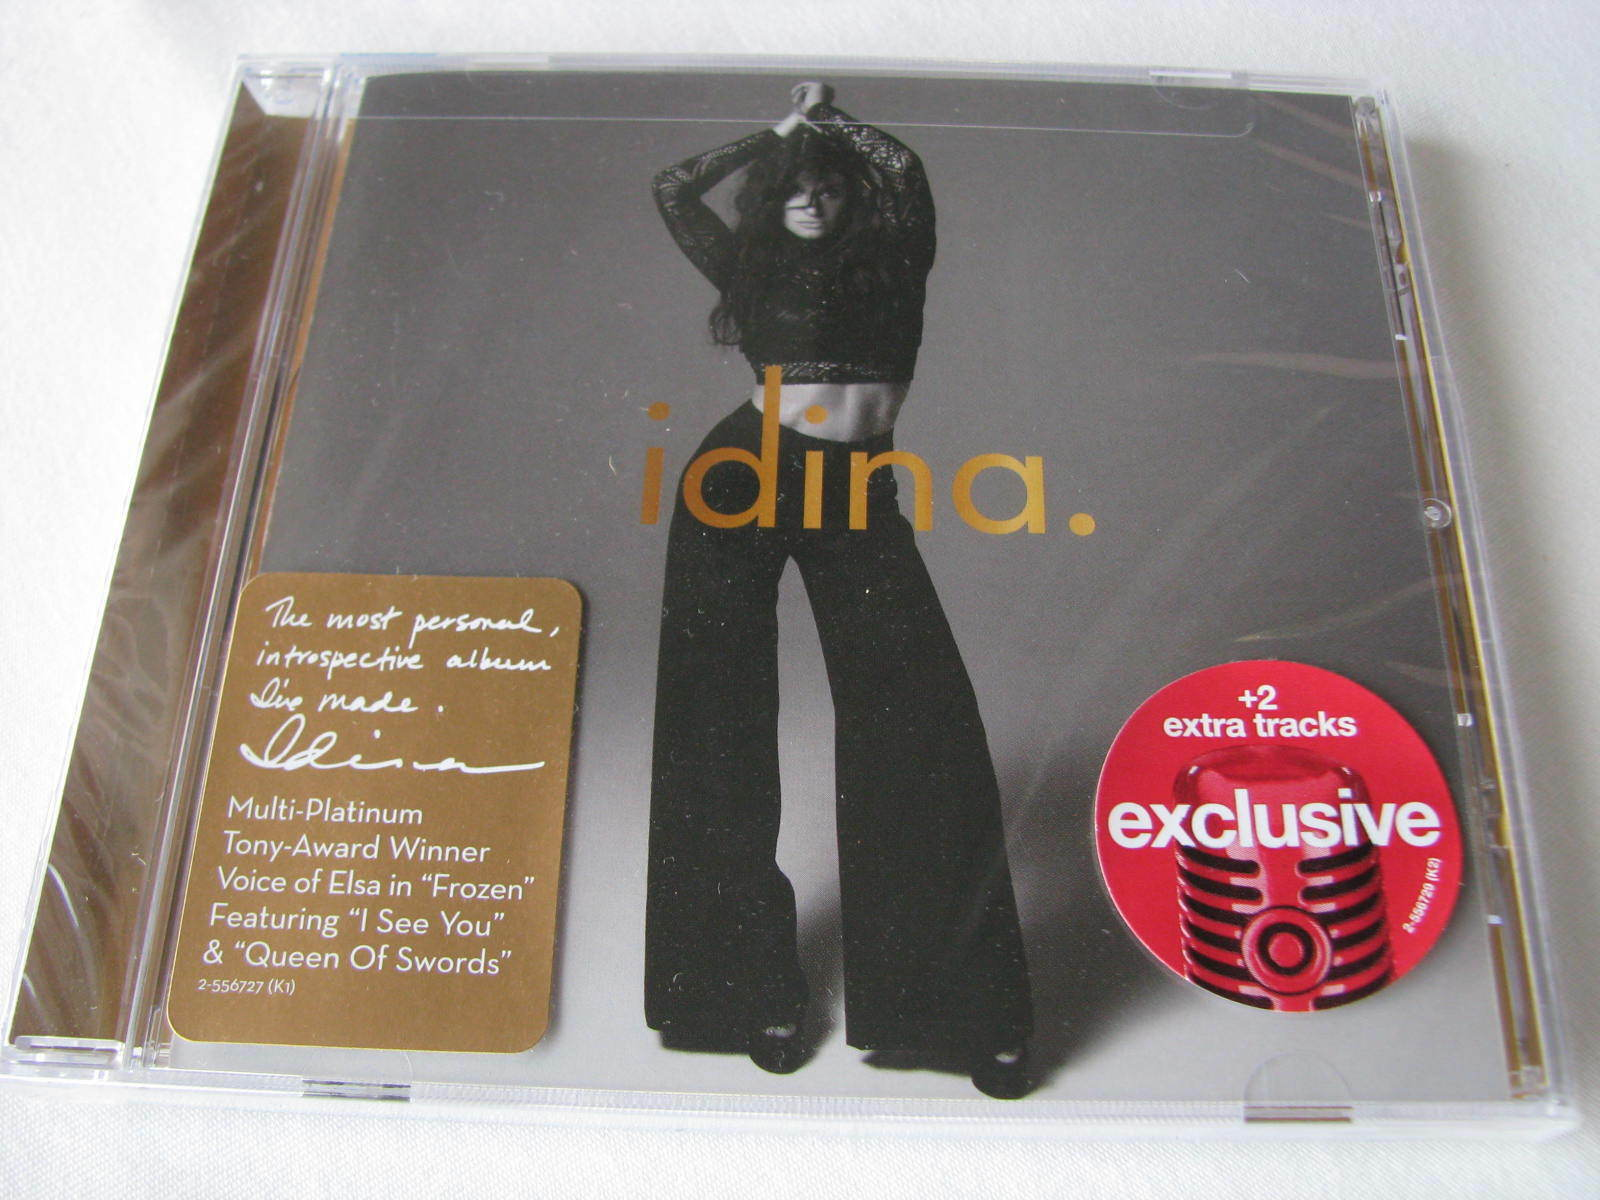 IDINA MENZEL IDINA Target Exclusive CD W/ 2 Bonus Tracks, 2016 NEW SEALED  - $14.99